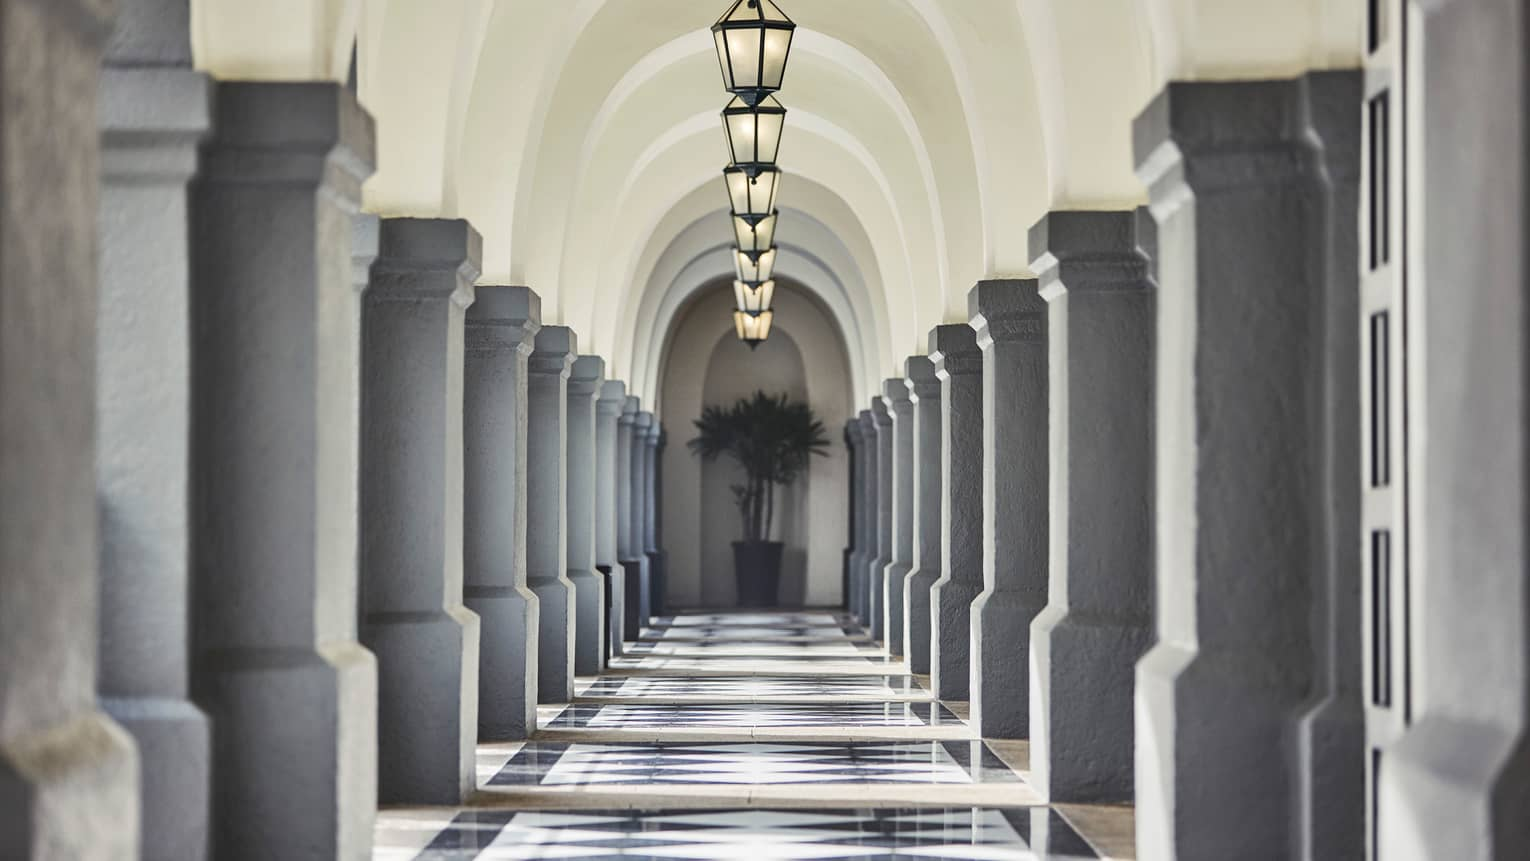 Stone pillars, lanterns down long, sunny outdoor hallway